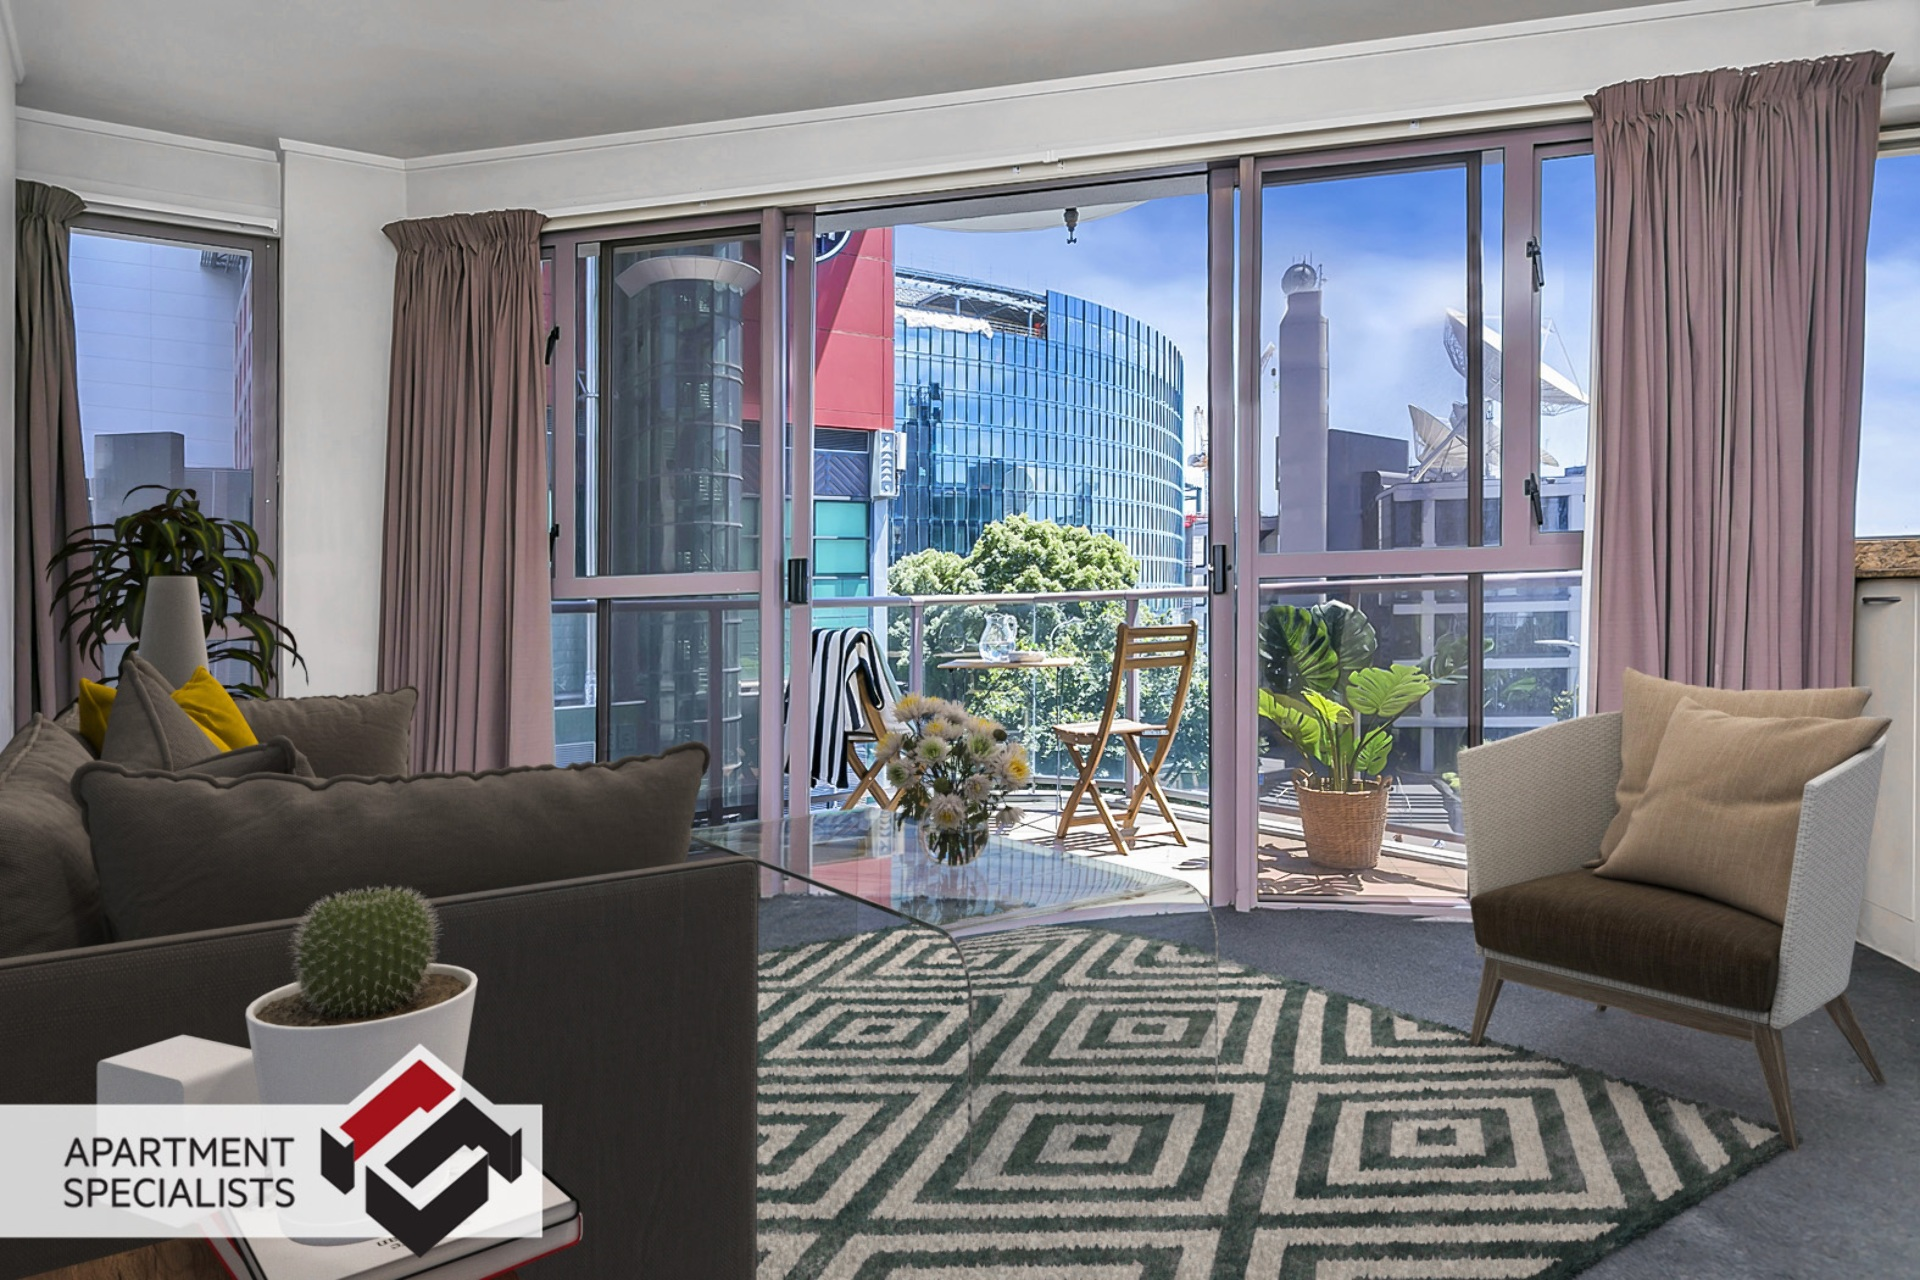 0 | 89 Victoria Street West, City Centre | Apartment Specialists